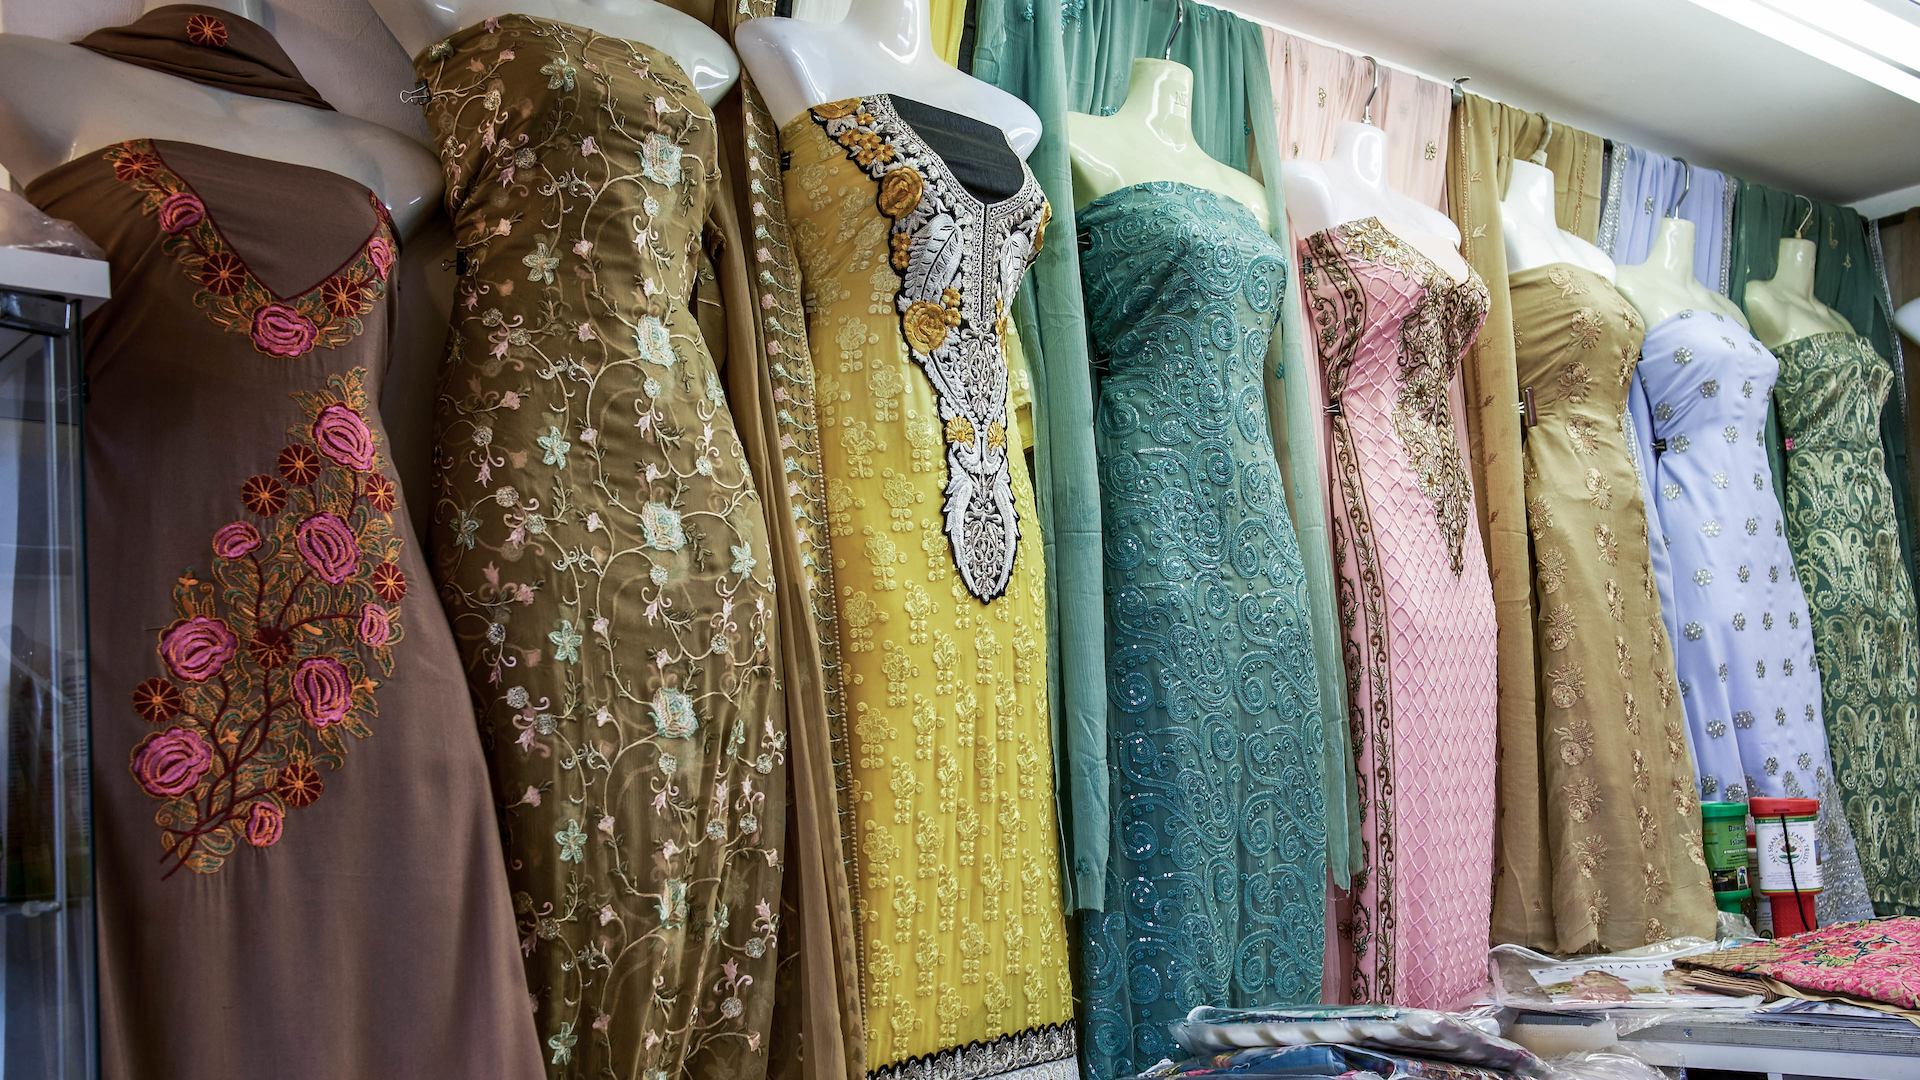 Collection of traditional East Asian dresses in a shop